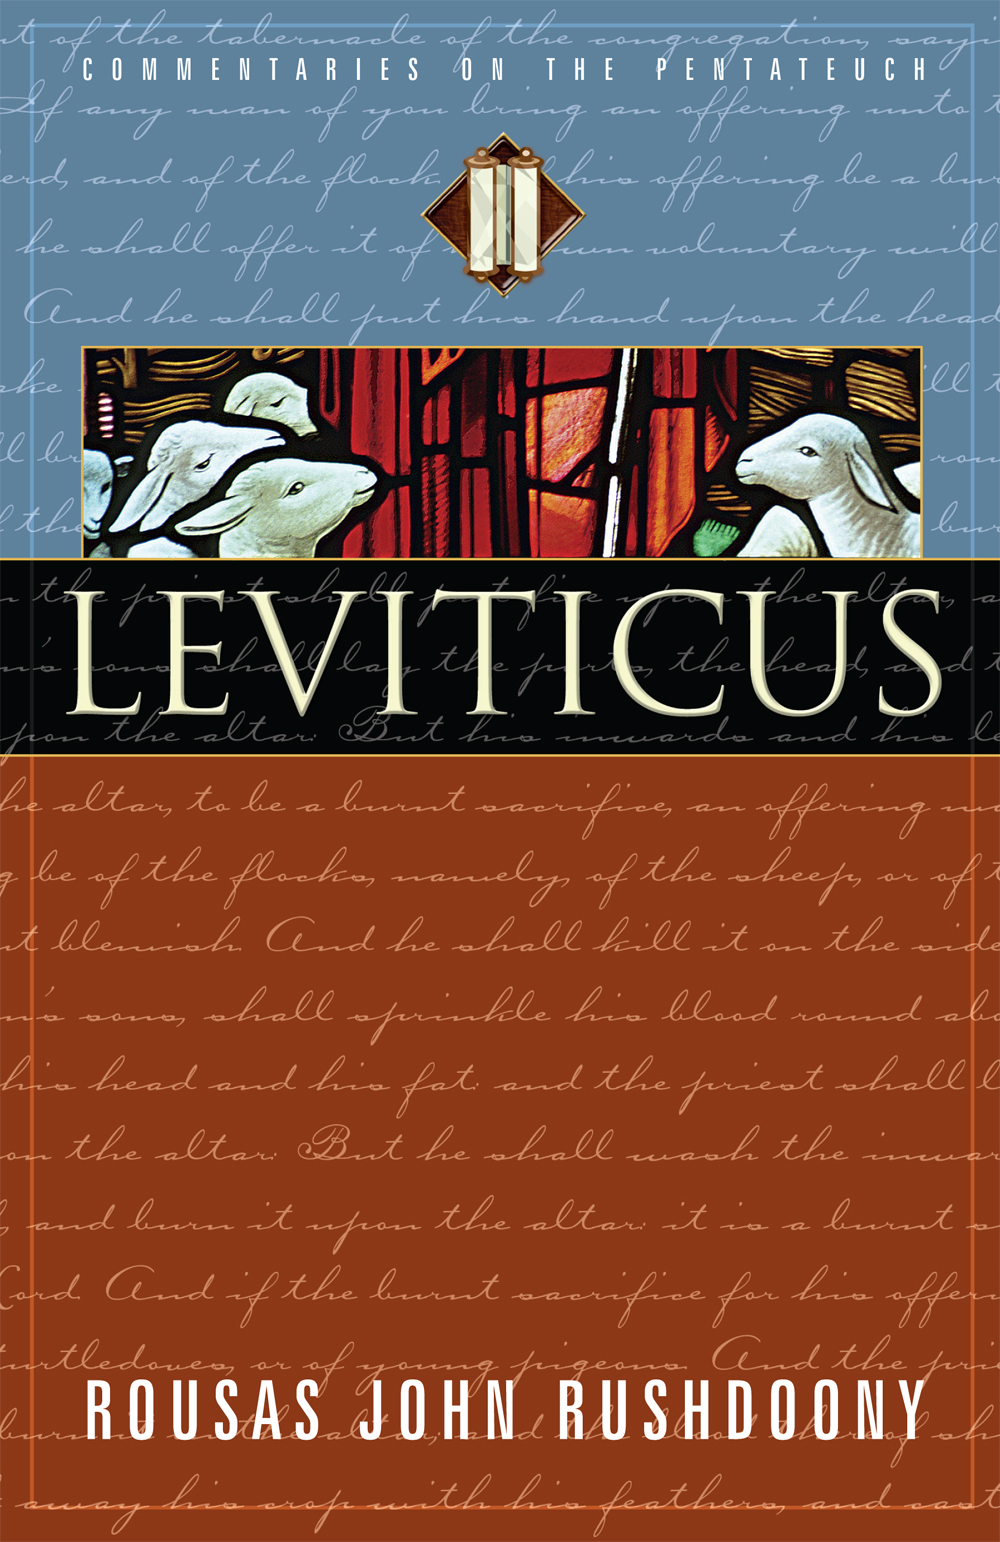 Leviticus: Volume III of Commentaries on the Pentateuch